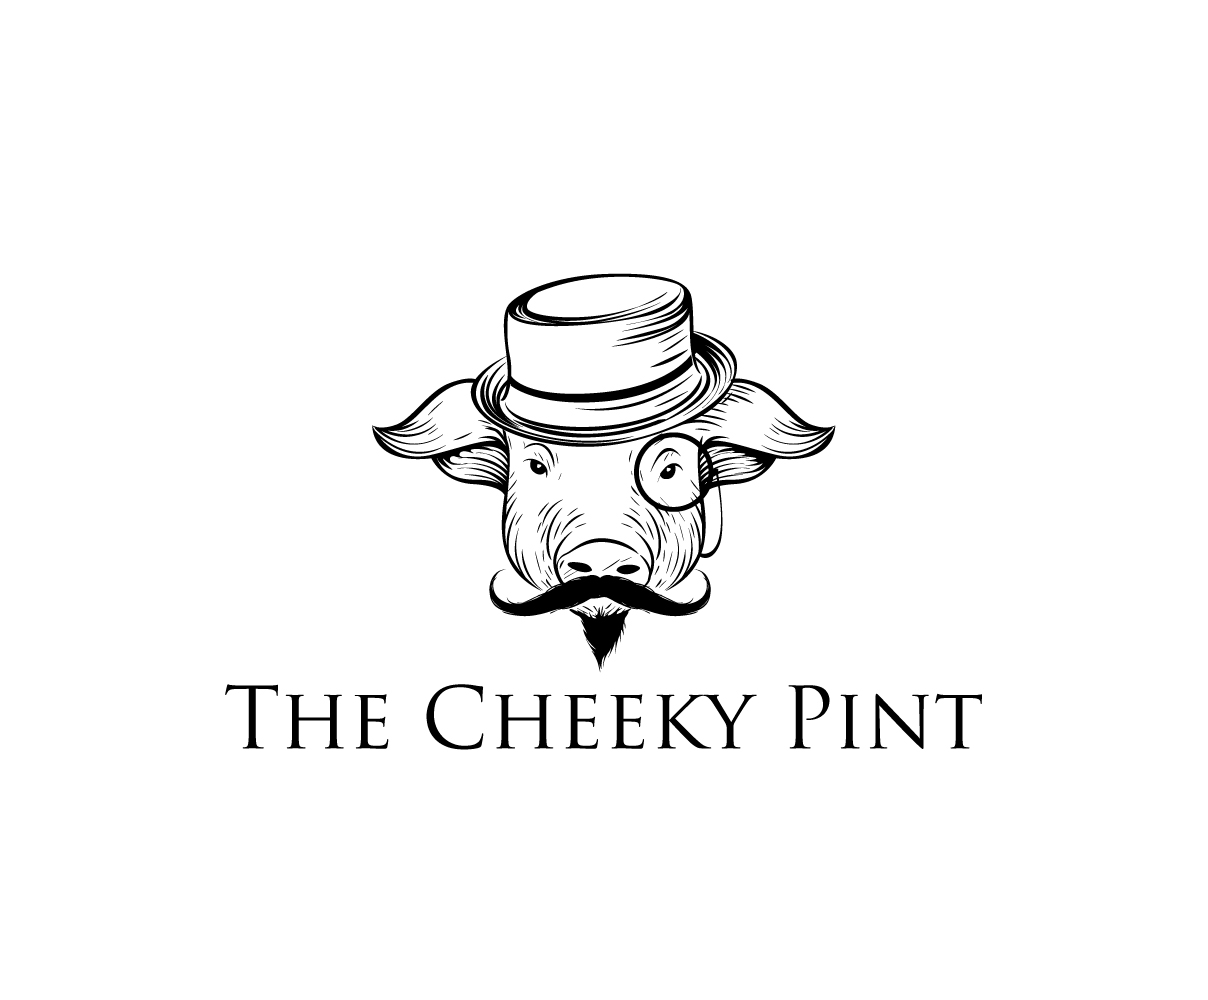 The Cheeky Pint